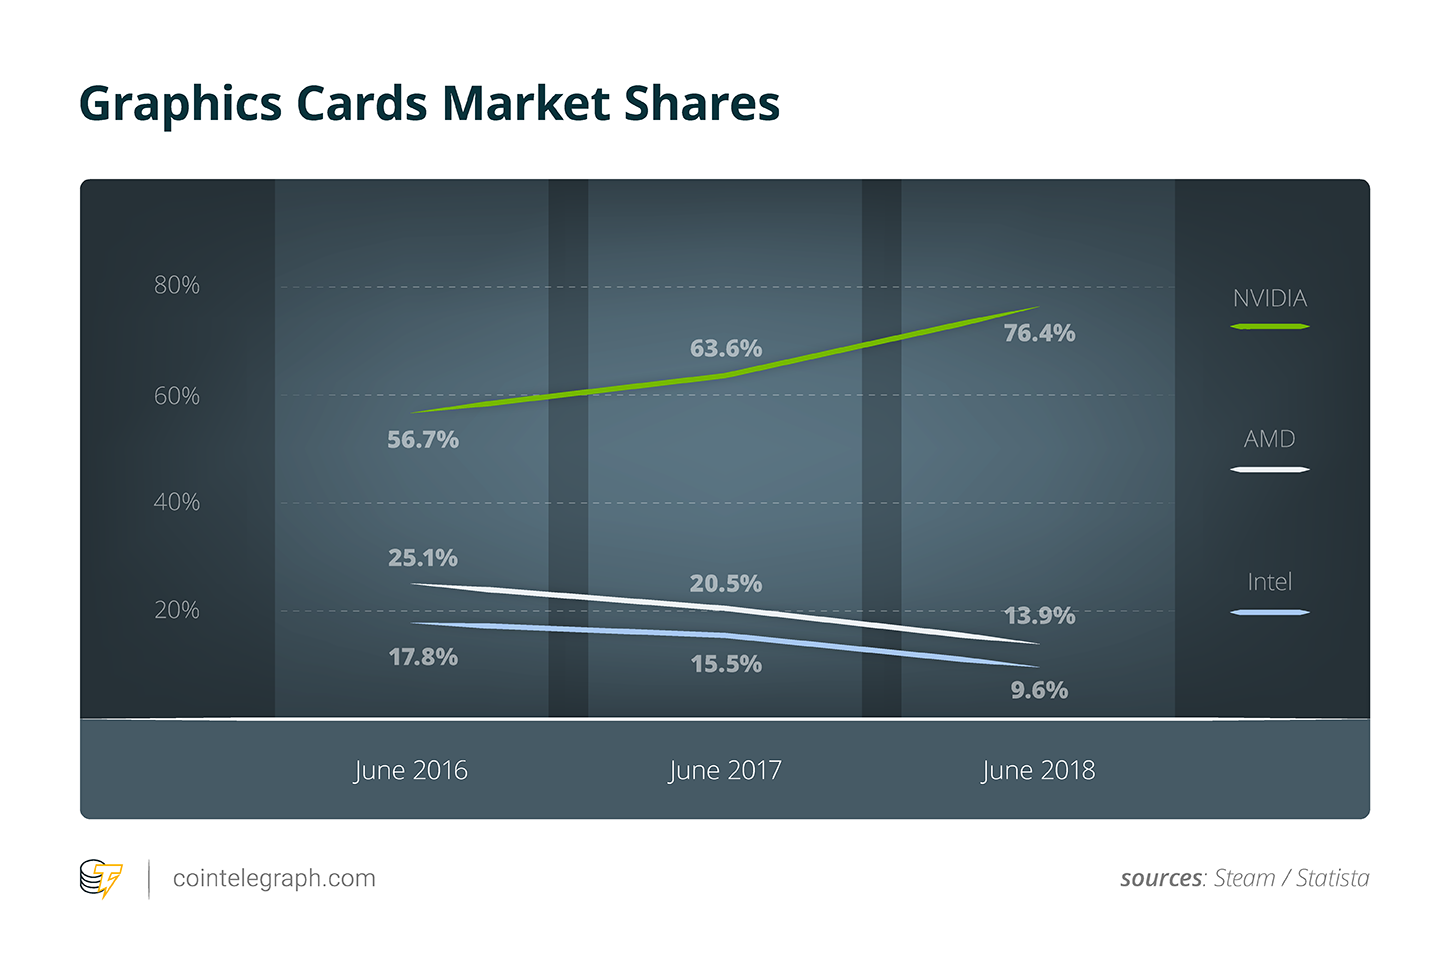 Graphics Cards Market Shares